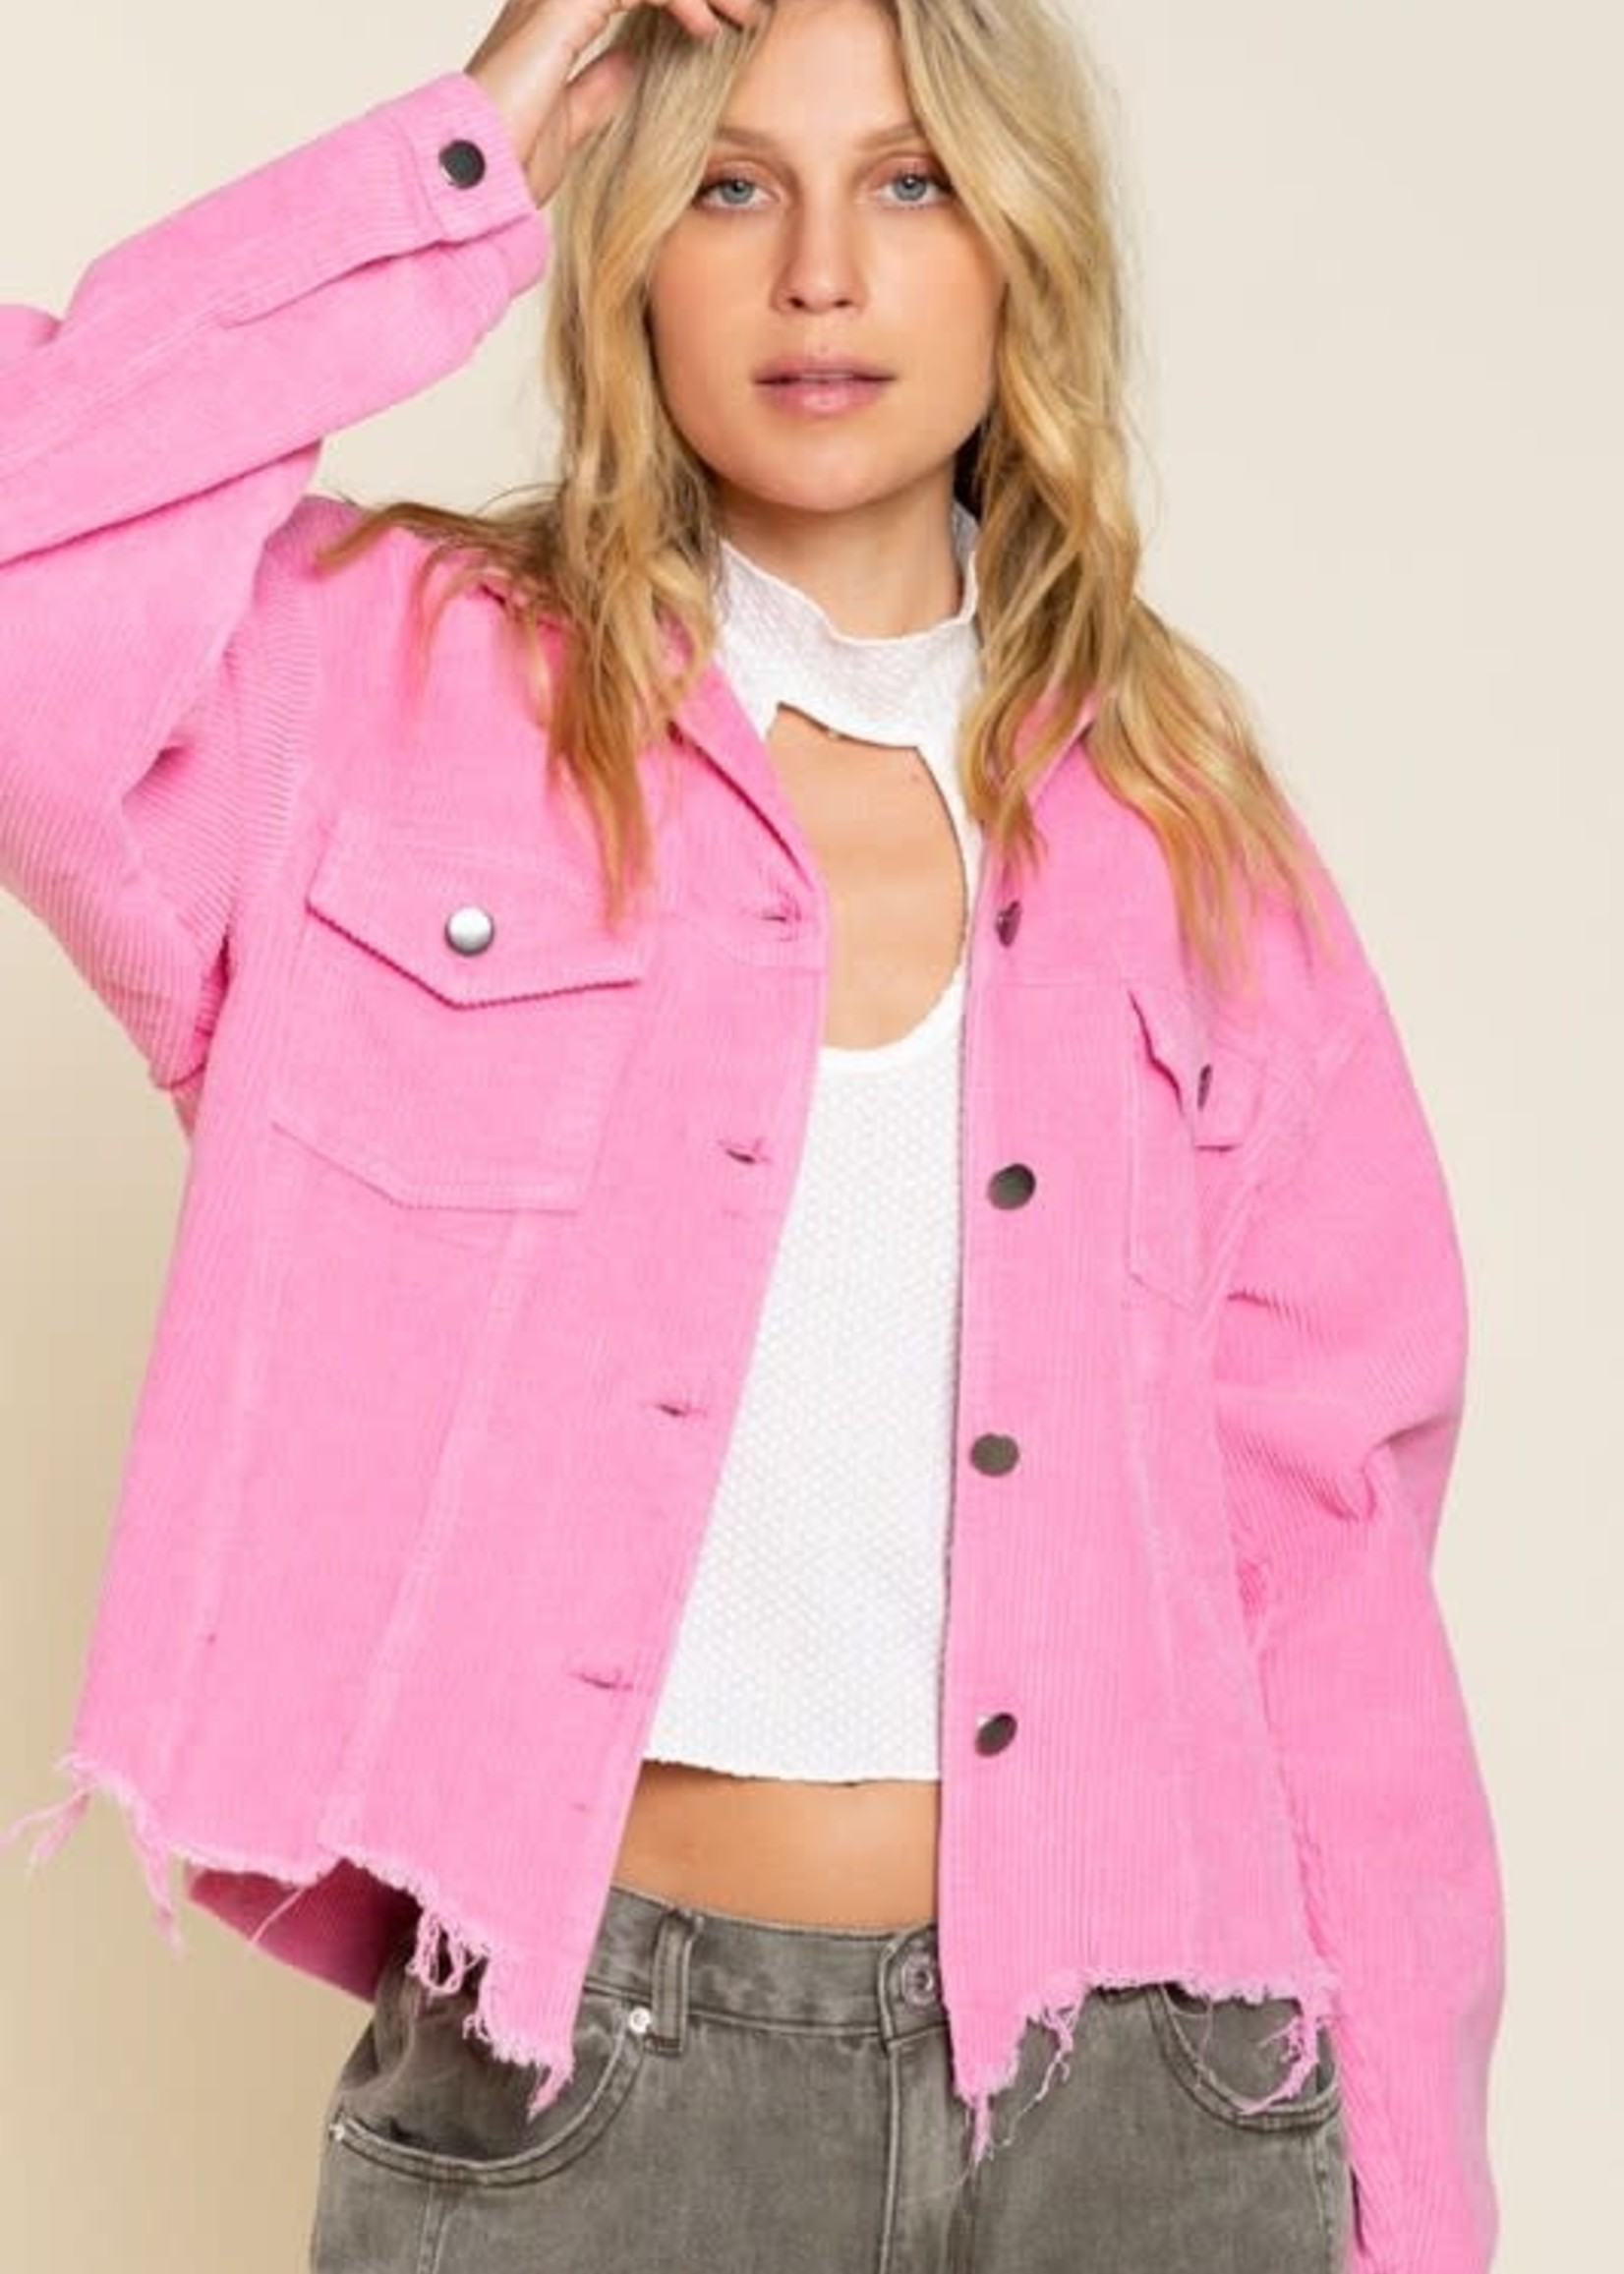 Call It A Day Hot Pink Corduroy Jacket